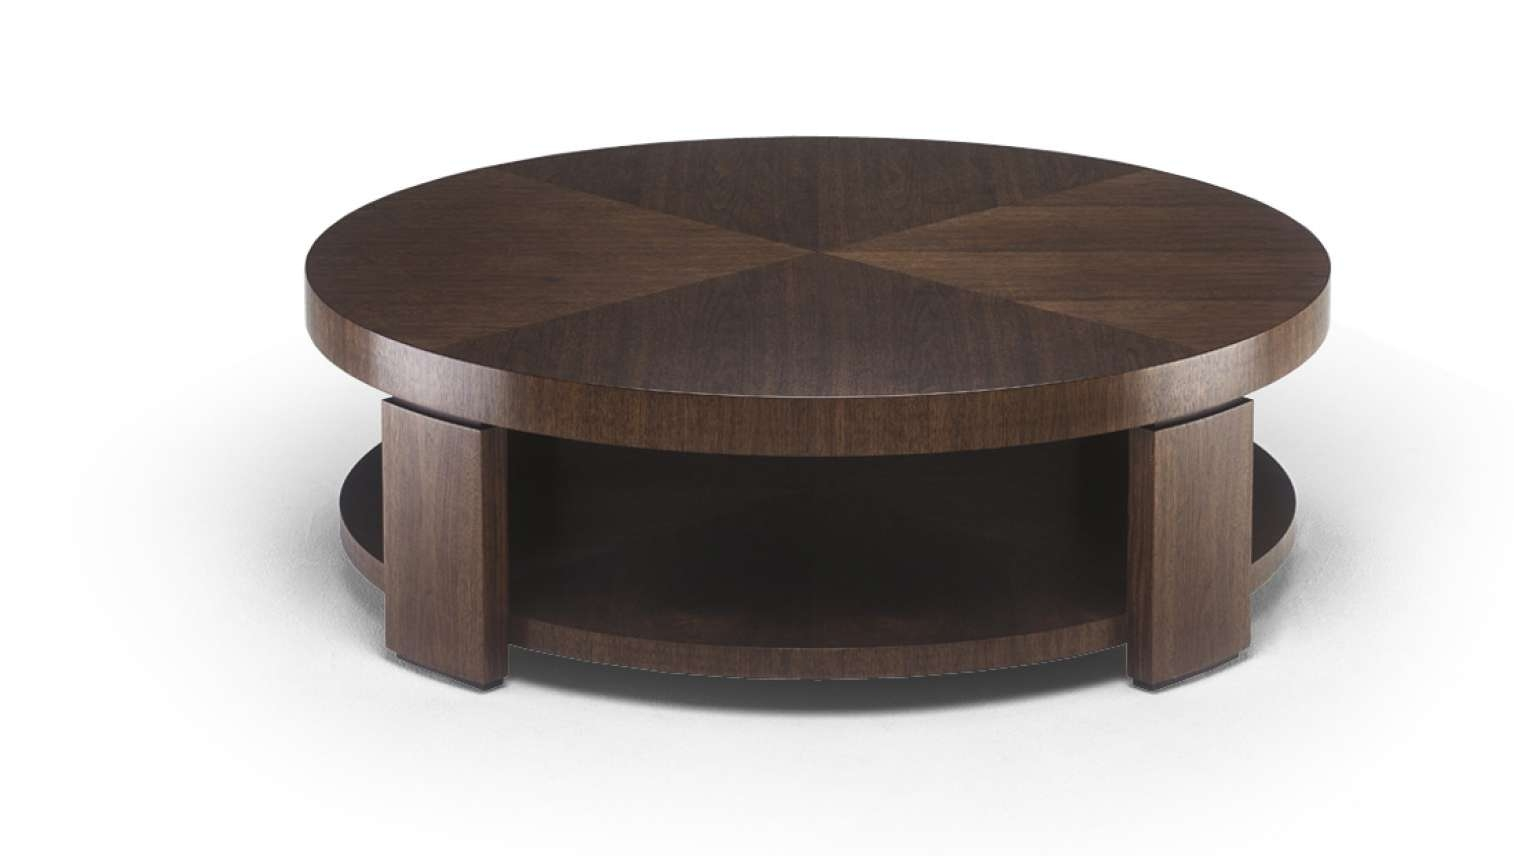 Coffee Table : Coffee Table Striking Dark Wood Images Ideas Glass With Regard To Best And Newest Dark Wood Round Coffee Tables (View 3 of 20)